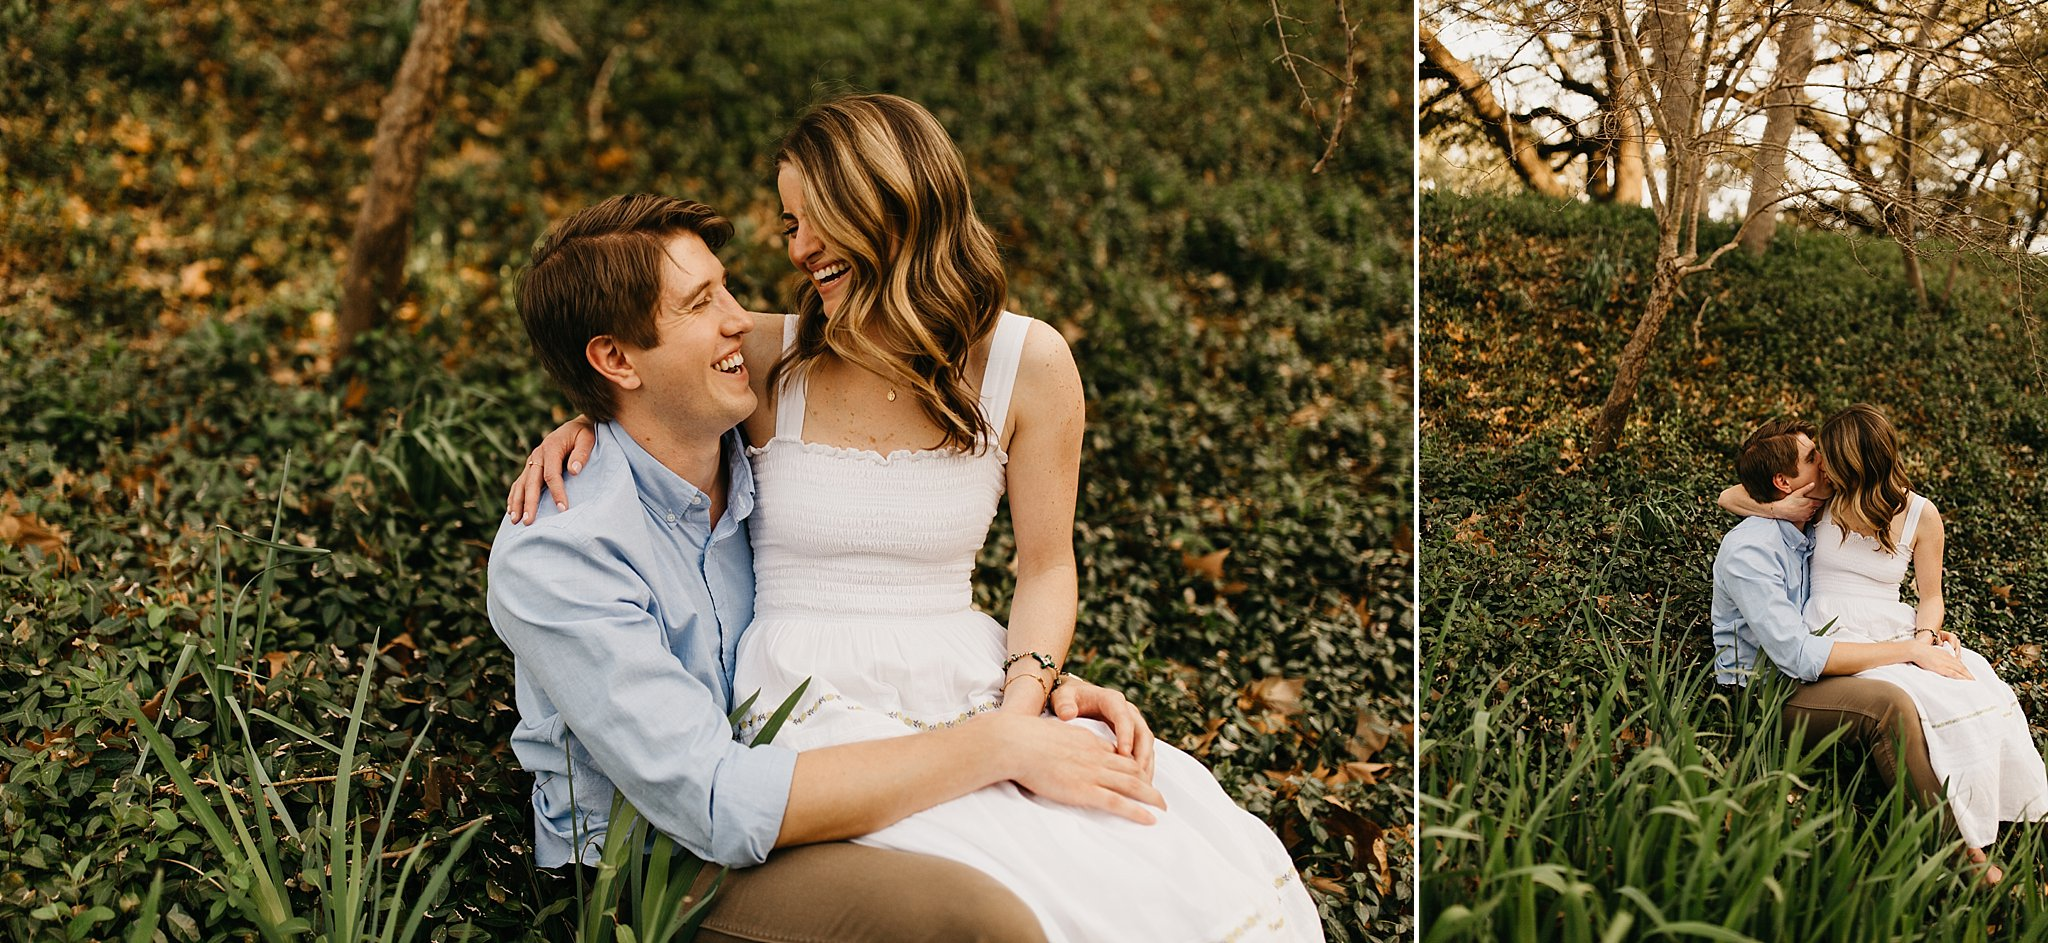 Wilderlove Co_Dallas Texas_Engagement Session_Highland Park_Romantic Wedding Photography_0011.jpg